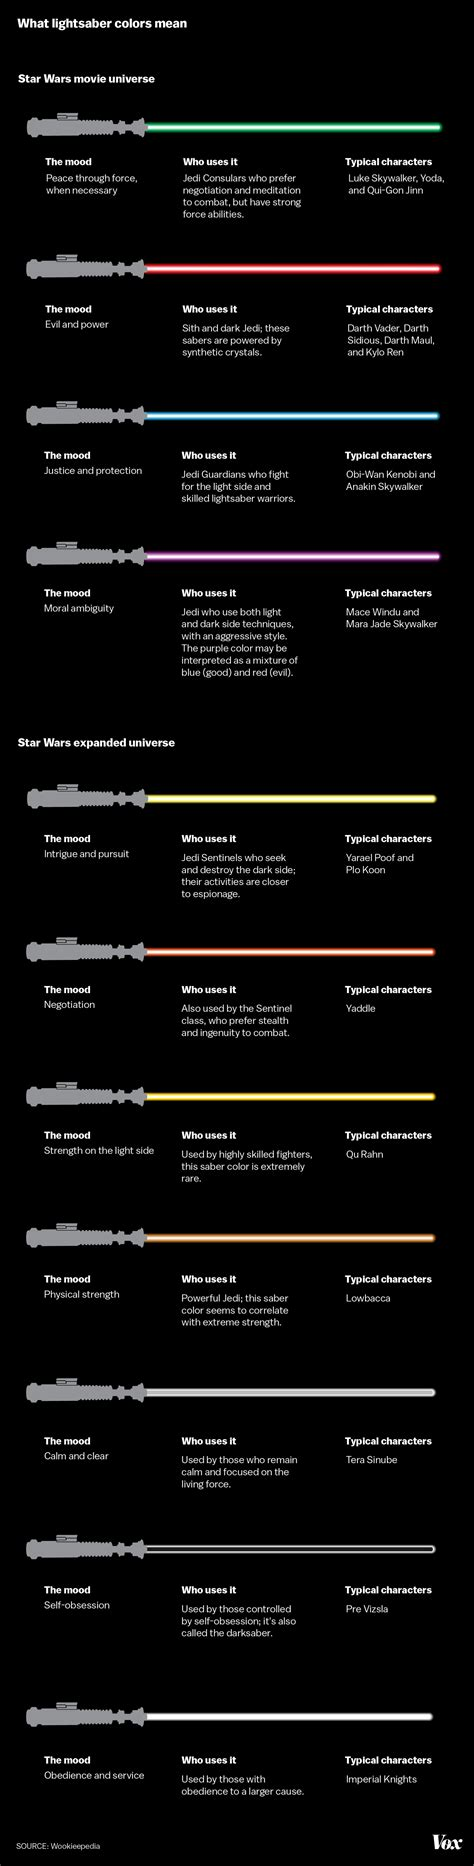 wars lightsaber colors wars lightsaber colors explained vox